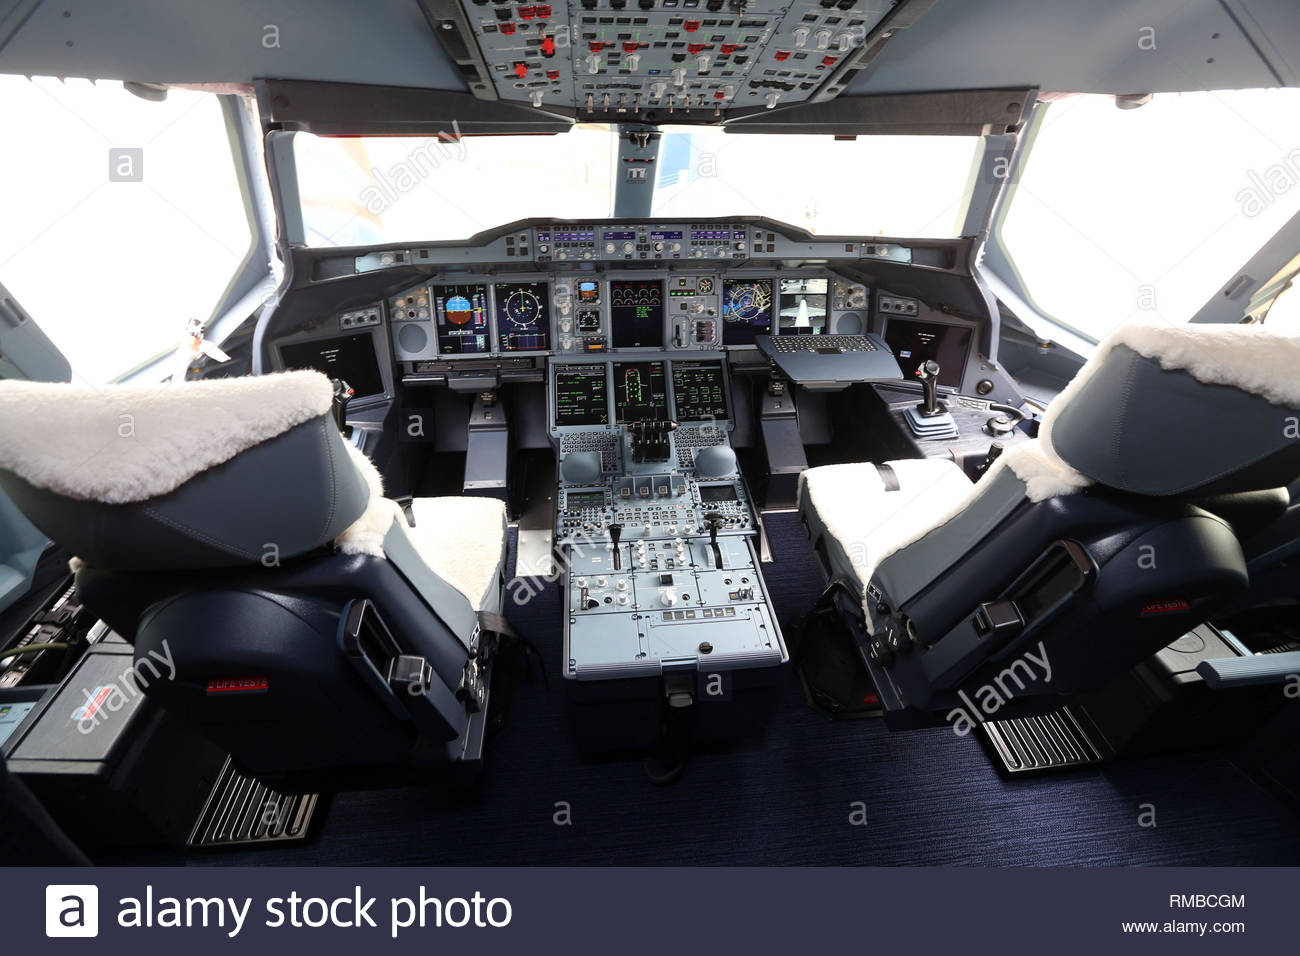 File photo dated 4/7/2013 of the flight deck of a British Airways Airbus A380. Airbus has announced it will cease deliveries of its flagship A380 superjumbo passenger jet in 2021. Stock Photo